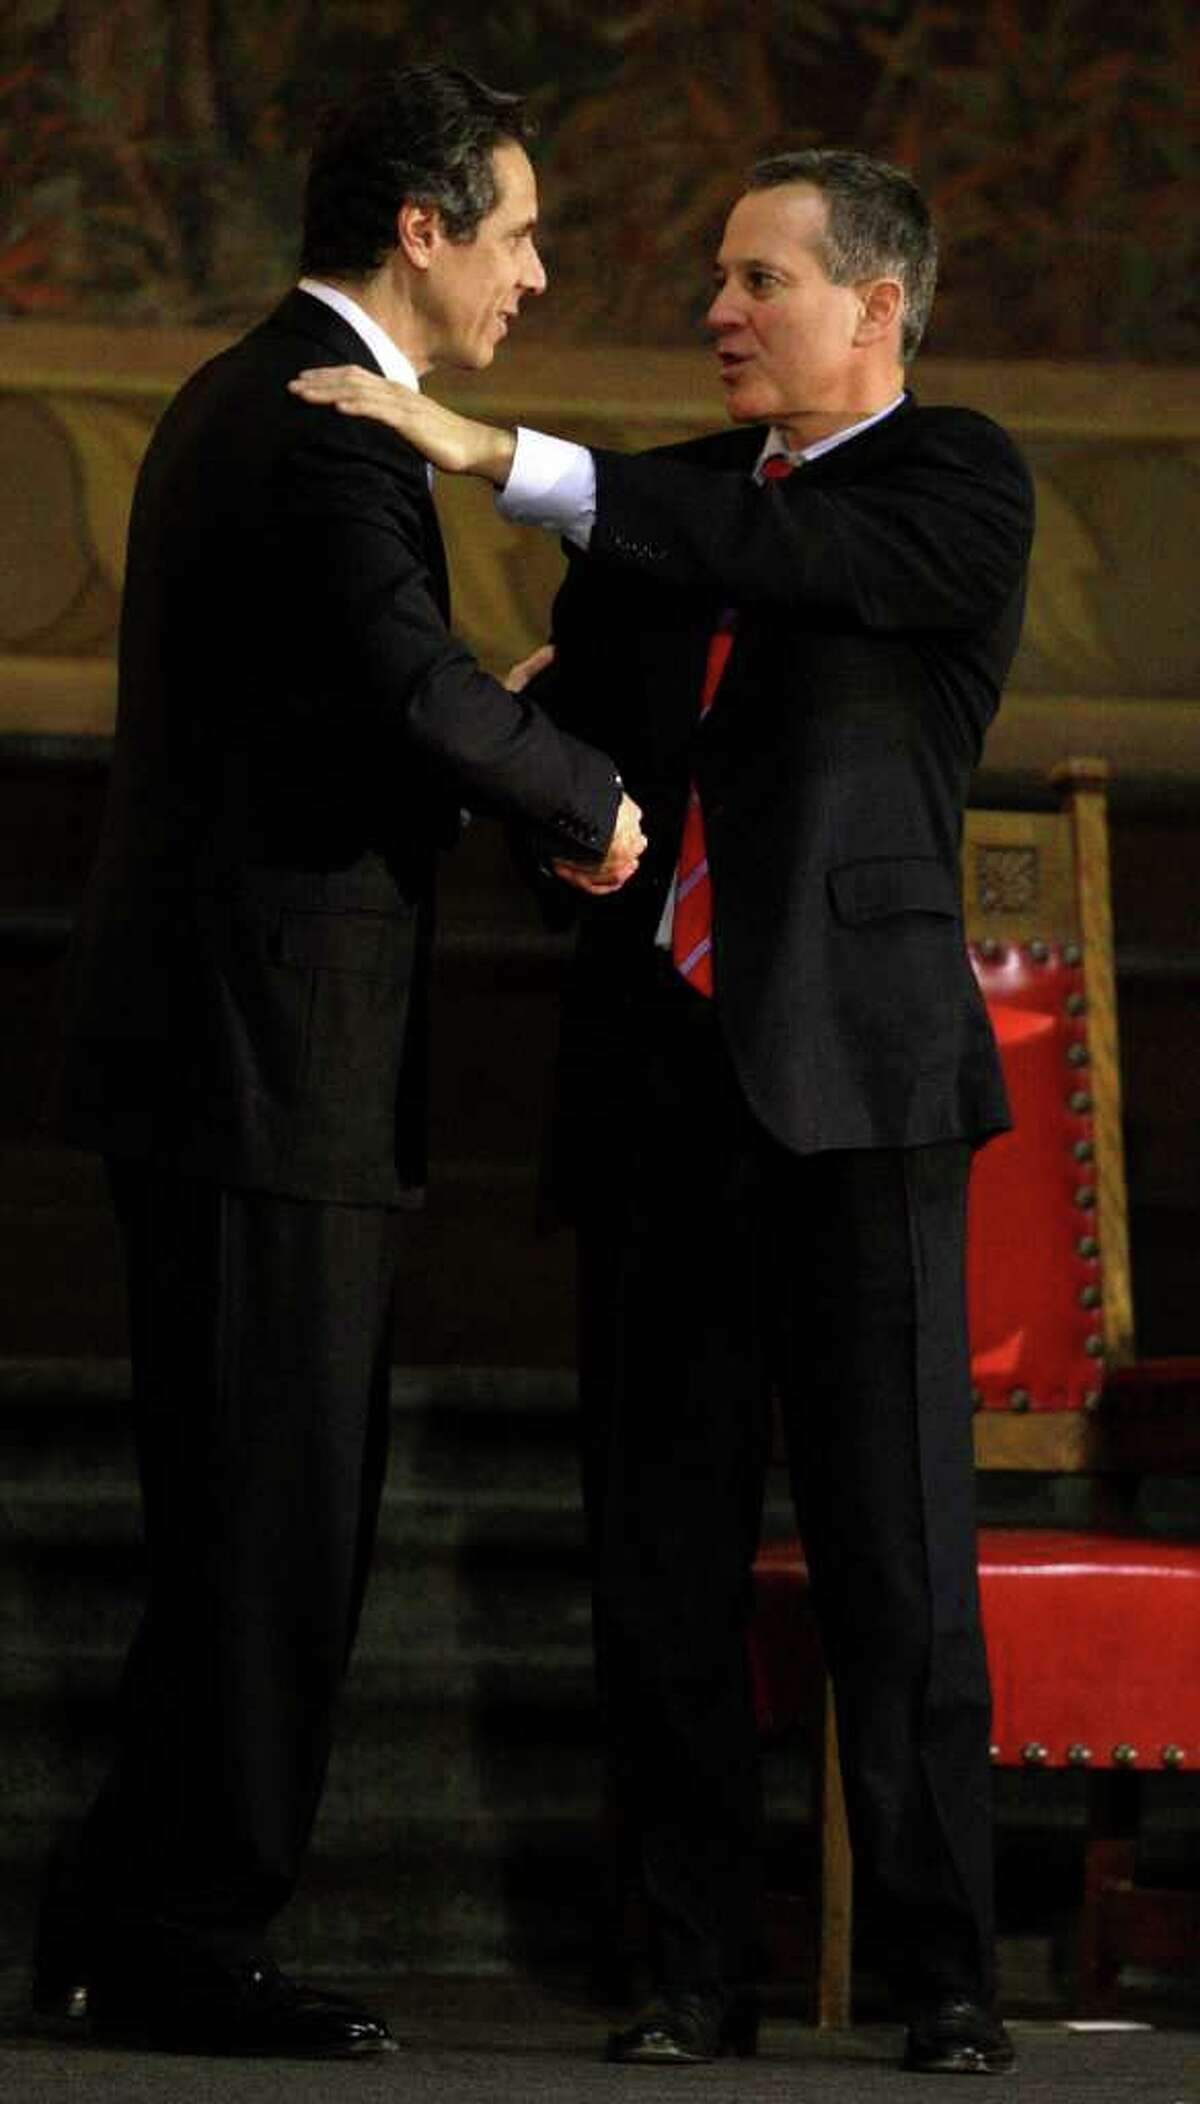 New York State Attorney General Eric Schneiderman, right, shakes hands with Gov. Andrew Cuomo at a swearing-in ceremony at City College Thursday, Jan. 6, 2011 in New York. (AP Photo/Frank Franklin II)